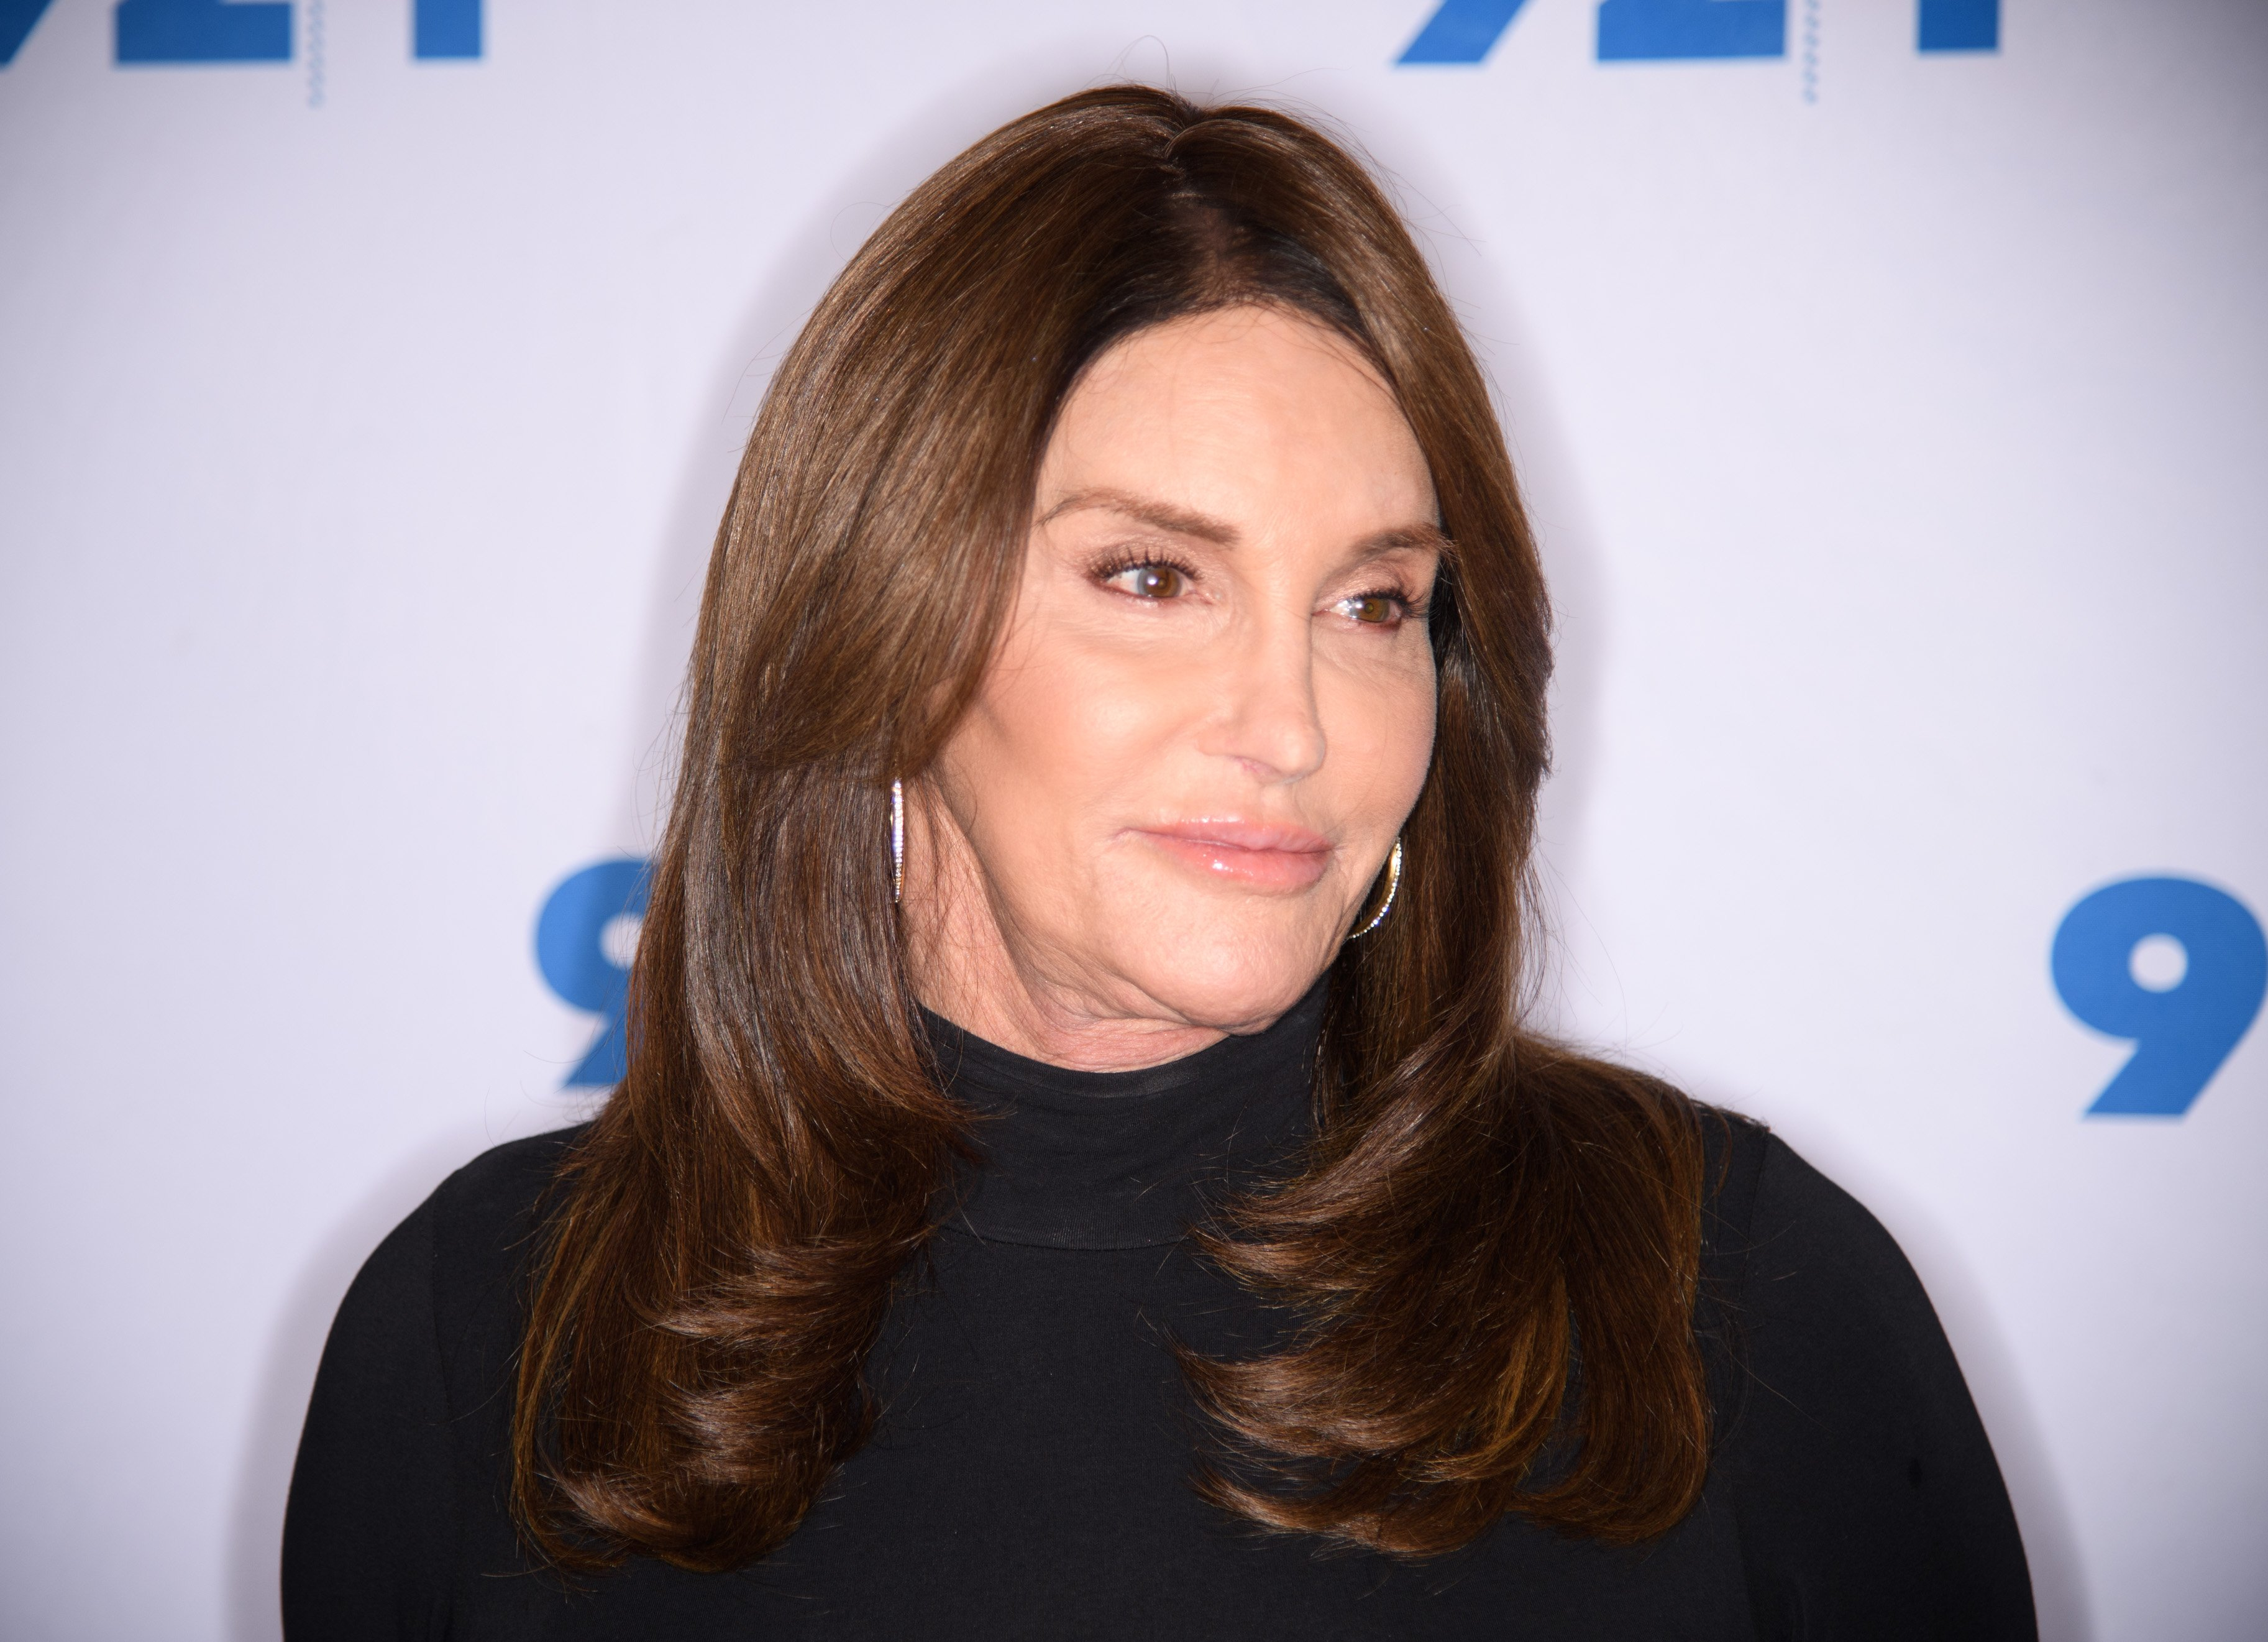 Caitlyn Jenner at Transgender Identity and Courage event, in New York, April 2017. | Photo: Getty Images.